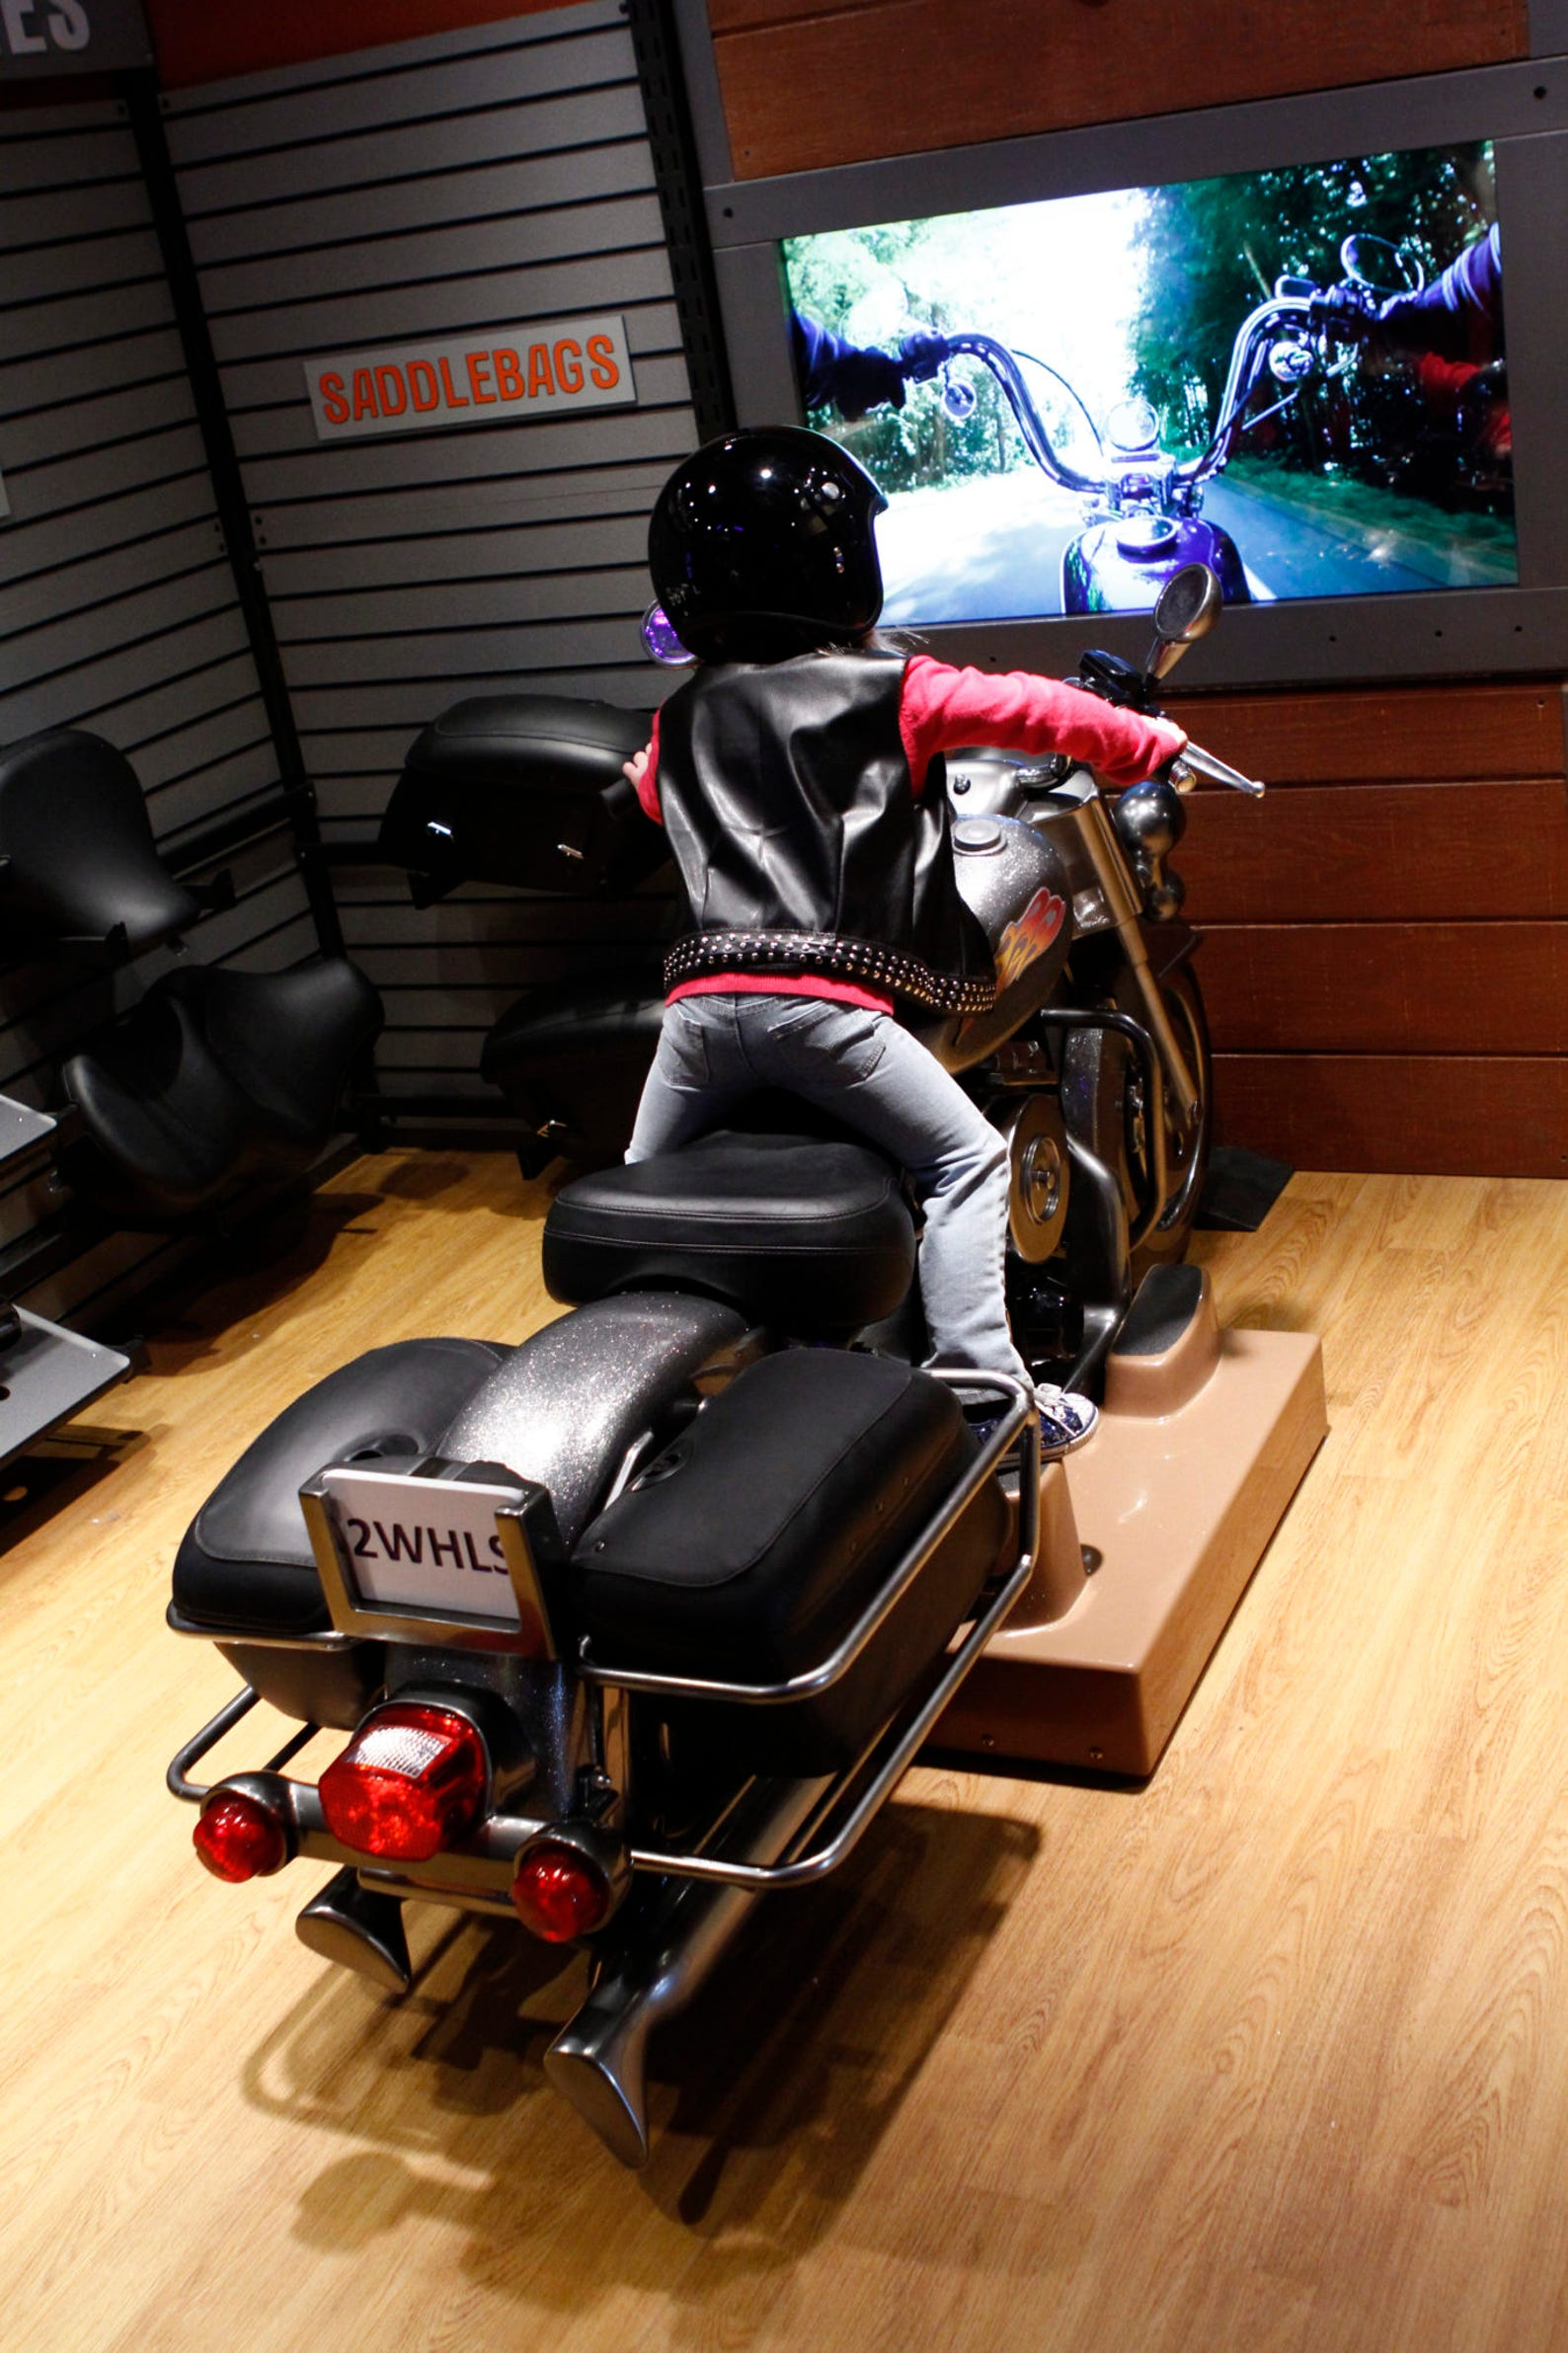 Hands-On Harley-Davidson exhibit on display at Discovery Center